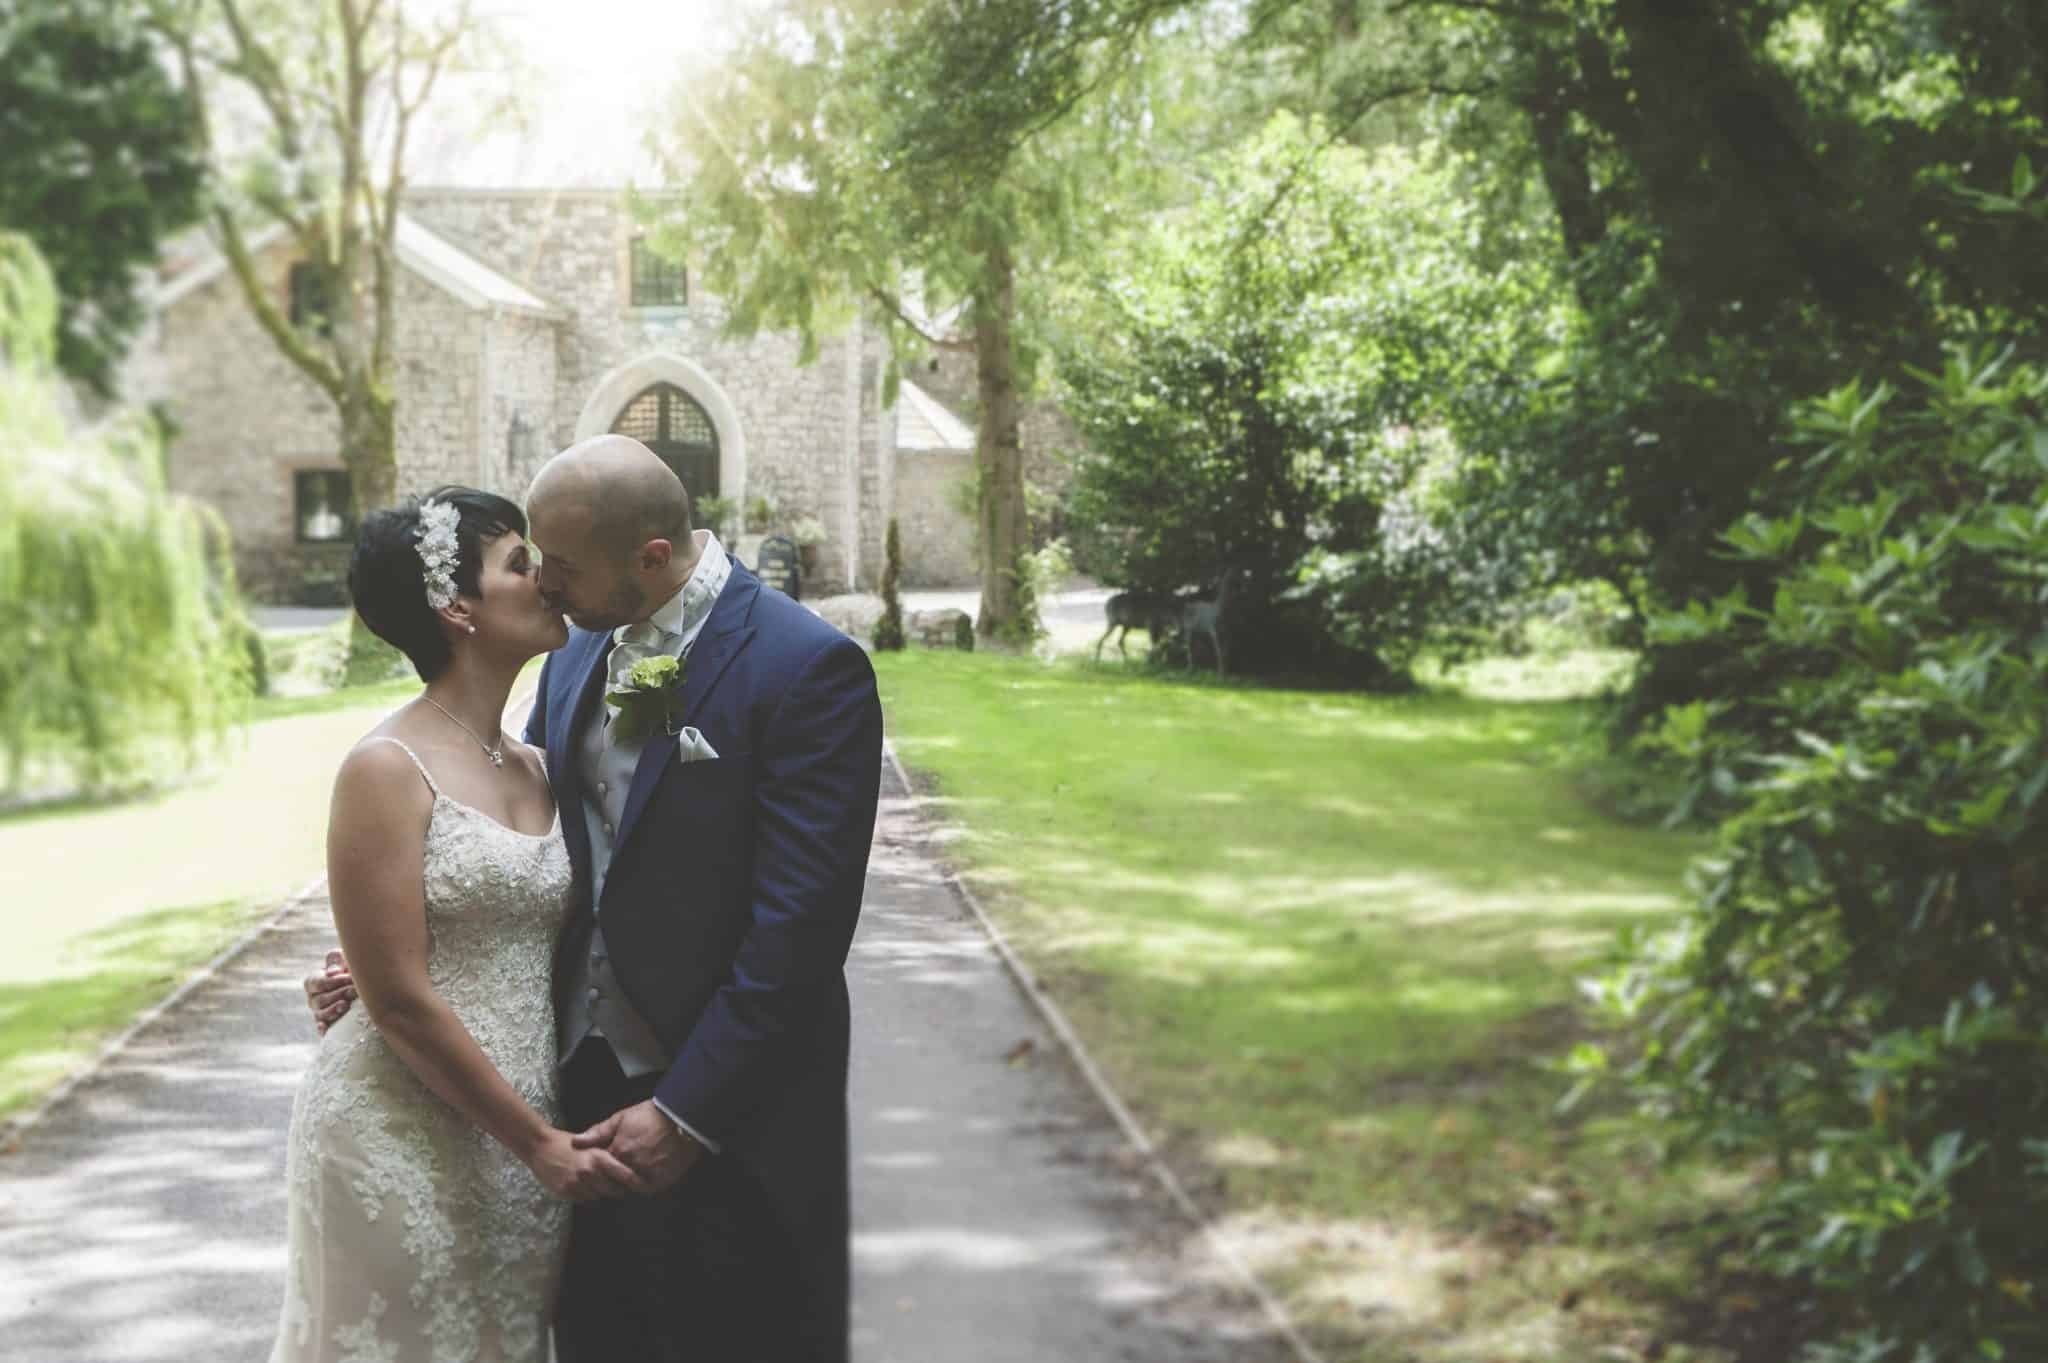 Bride & Groom stood looking at each other on the pathway of Pencoed House Estate kissing